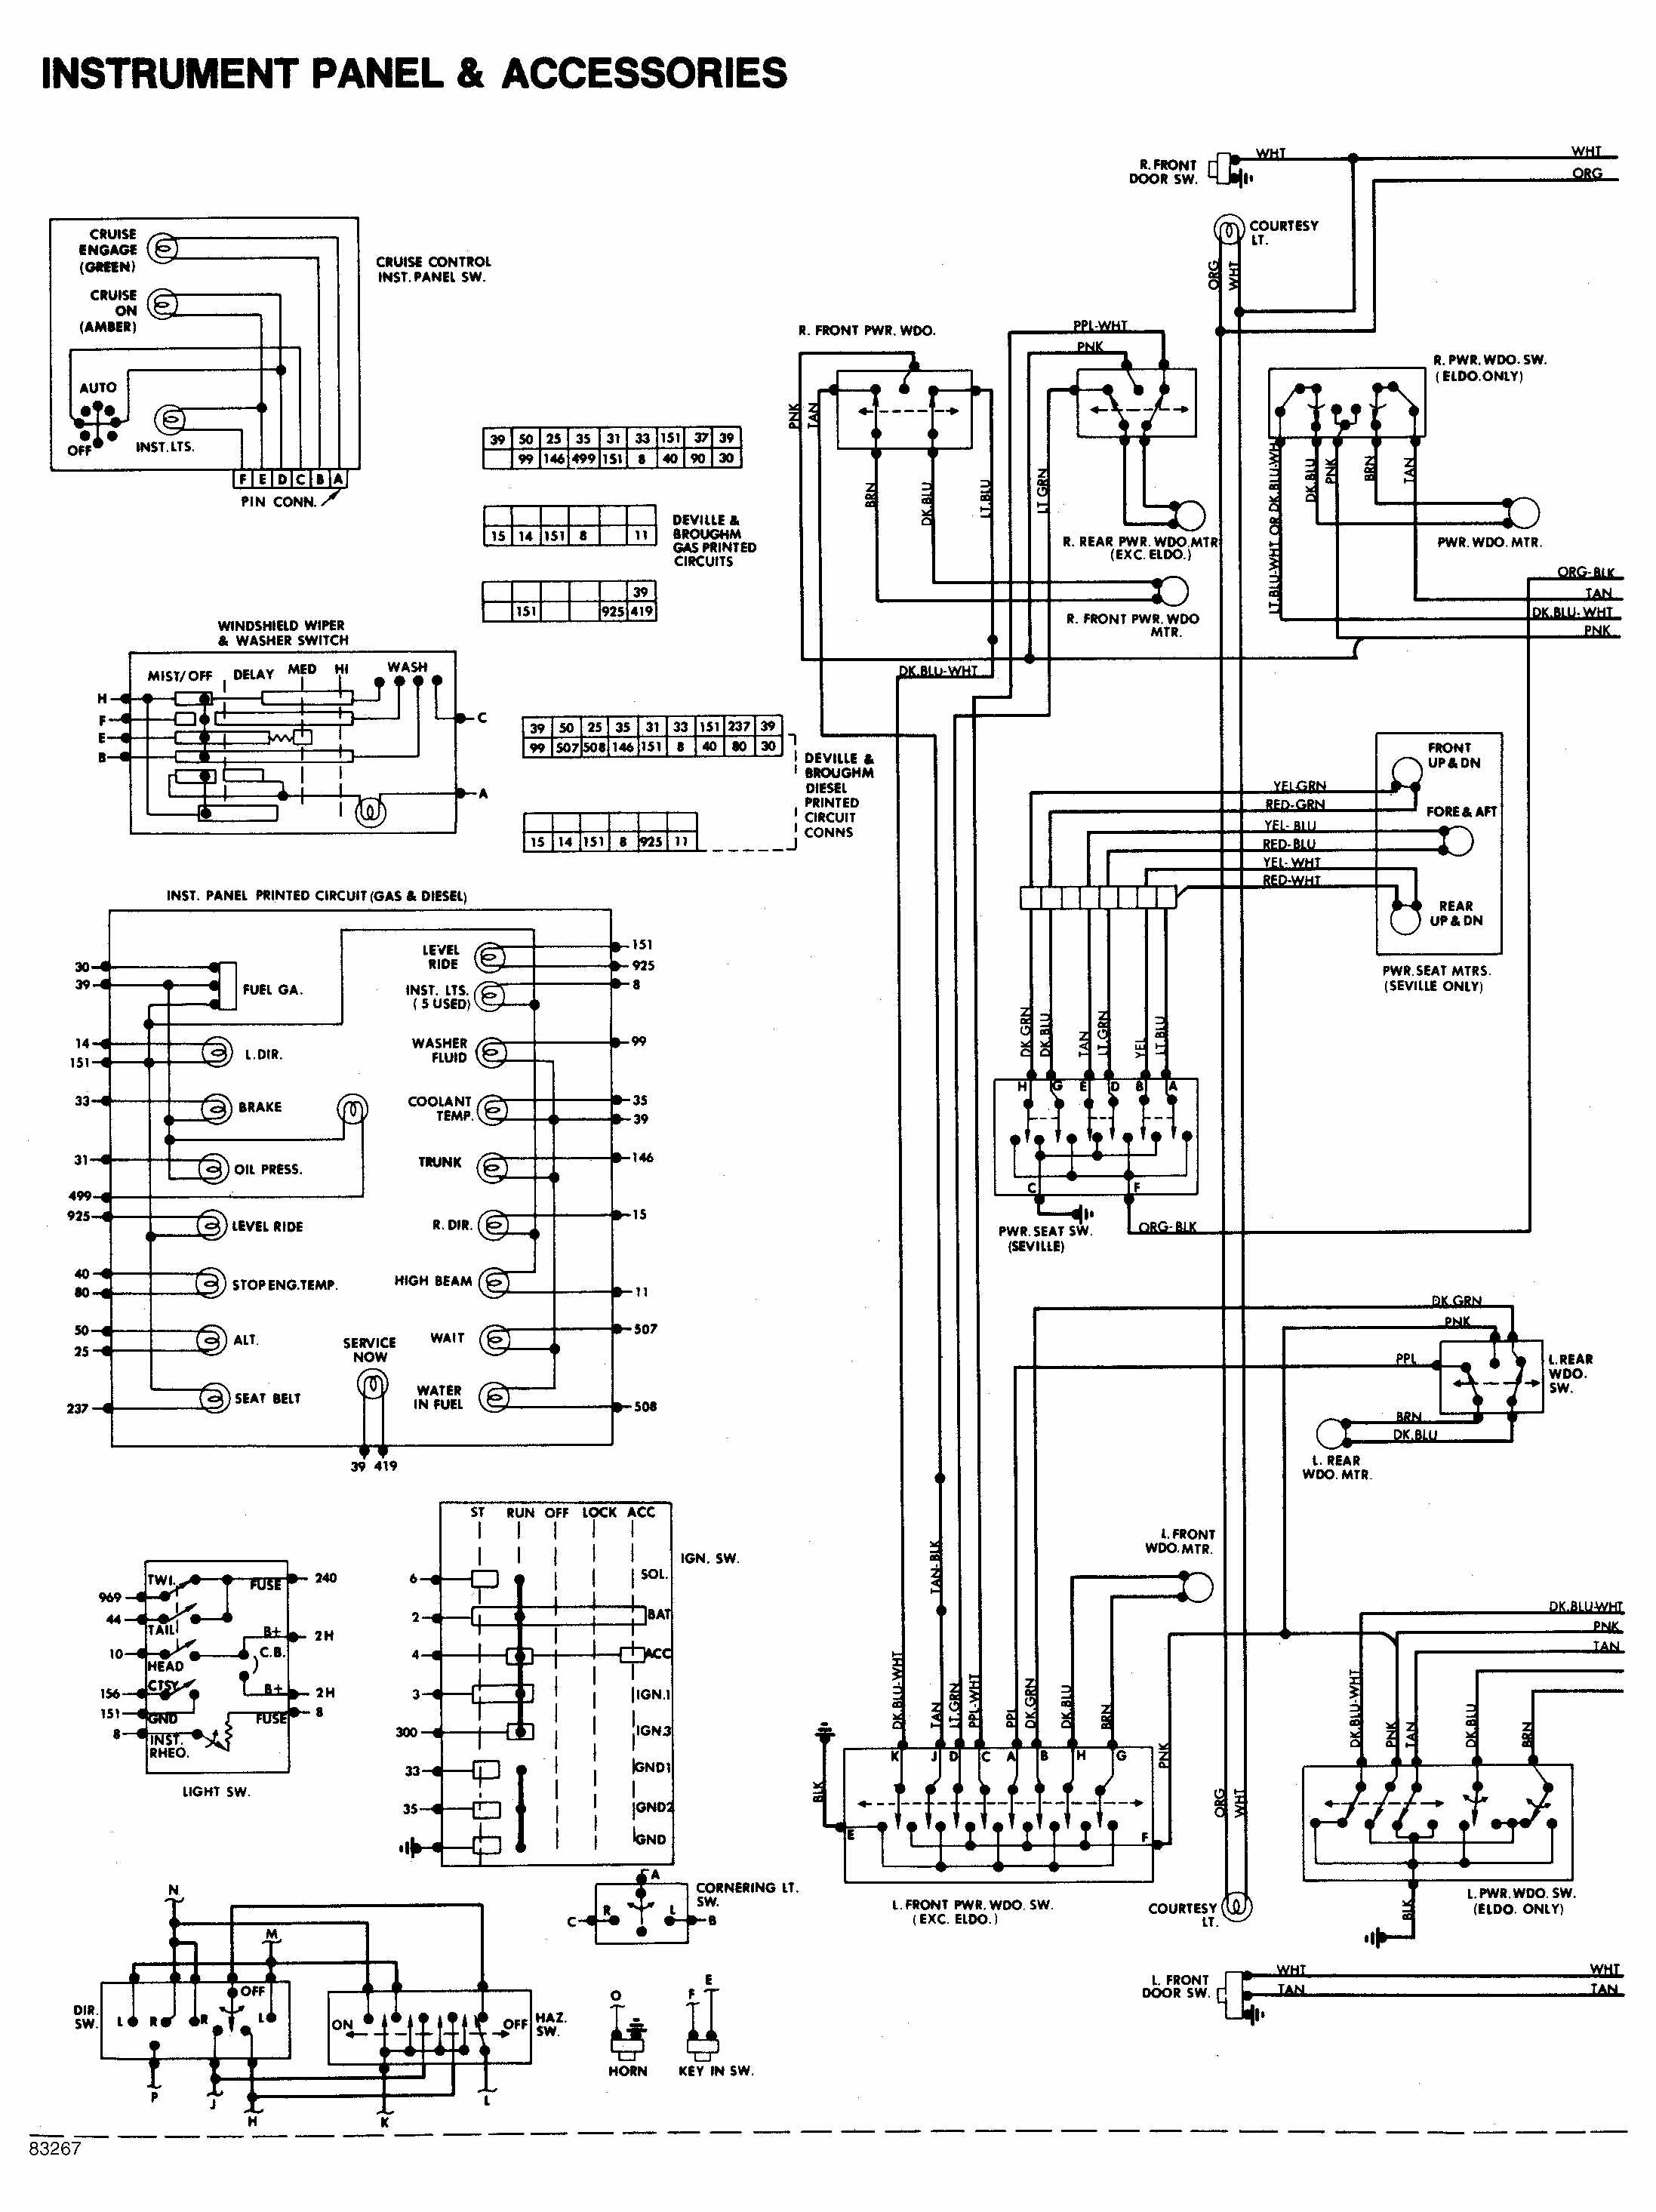 instrument panel and accessories wiring diagram of 1984 cadillac deville cadillac wiring harness ram truck wiring harness \u2022 wiring diagrams  at soozxer.org